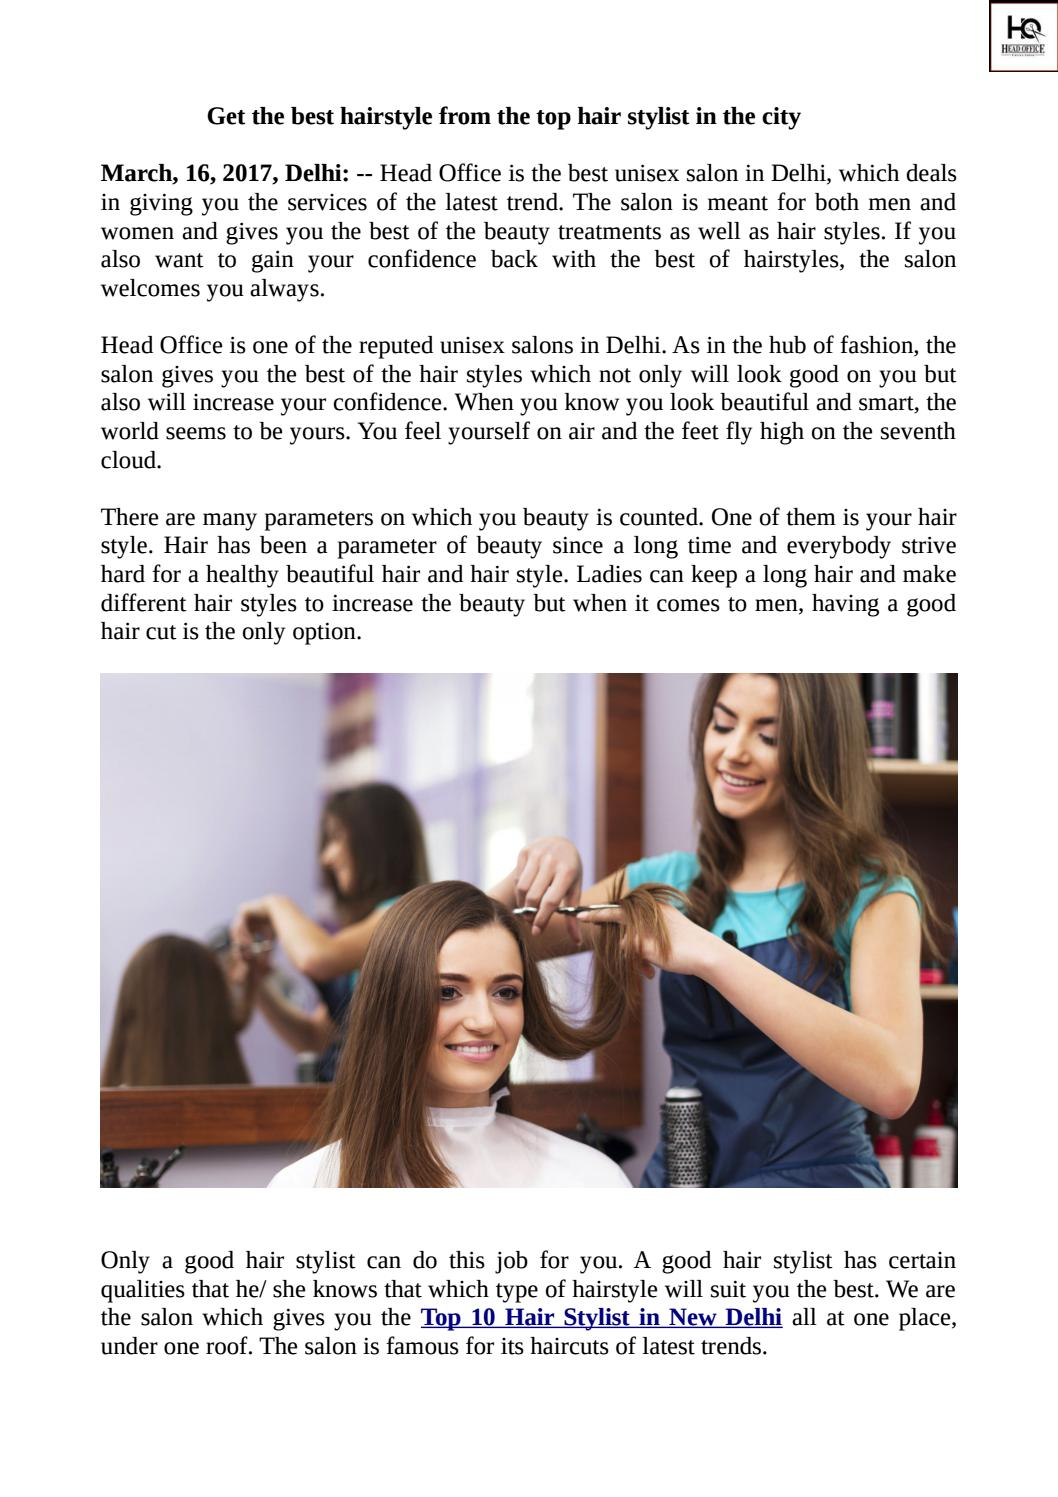 get the best hairstyle from the top hair stylist in the city by